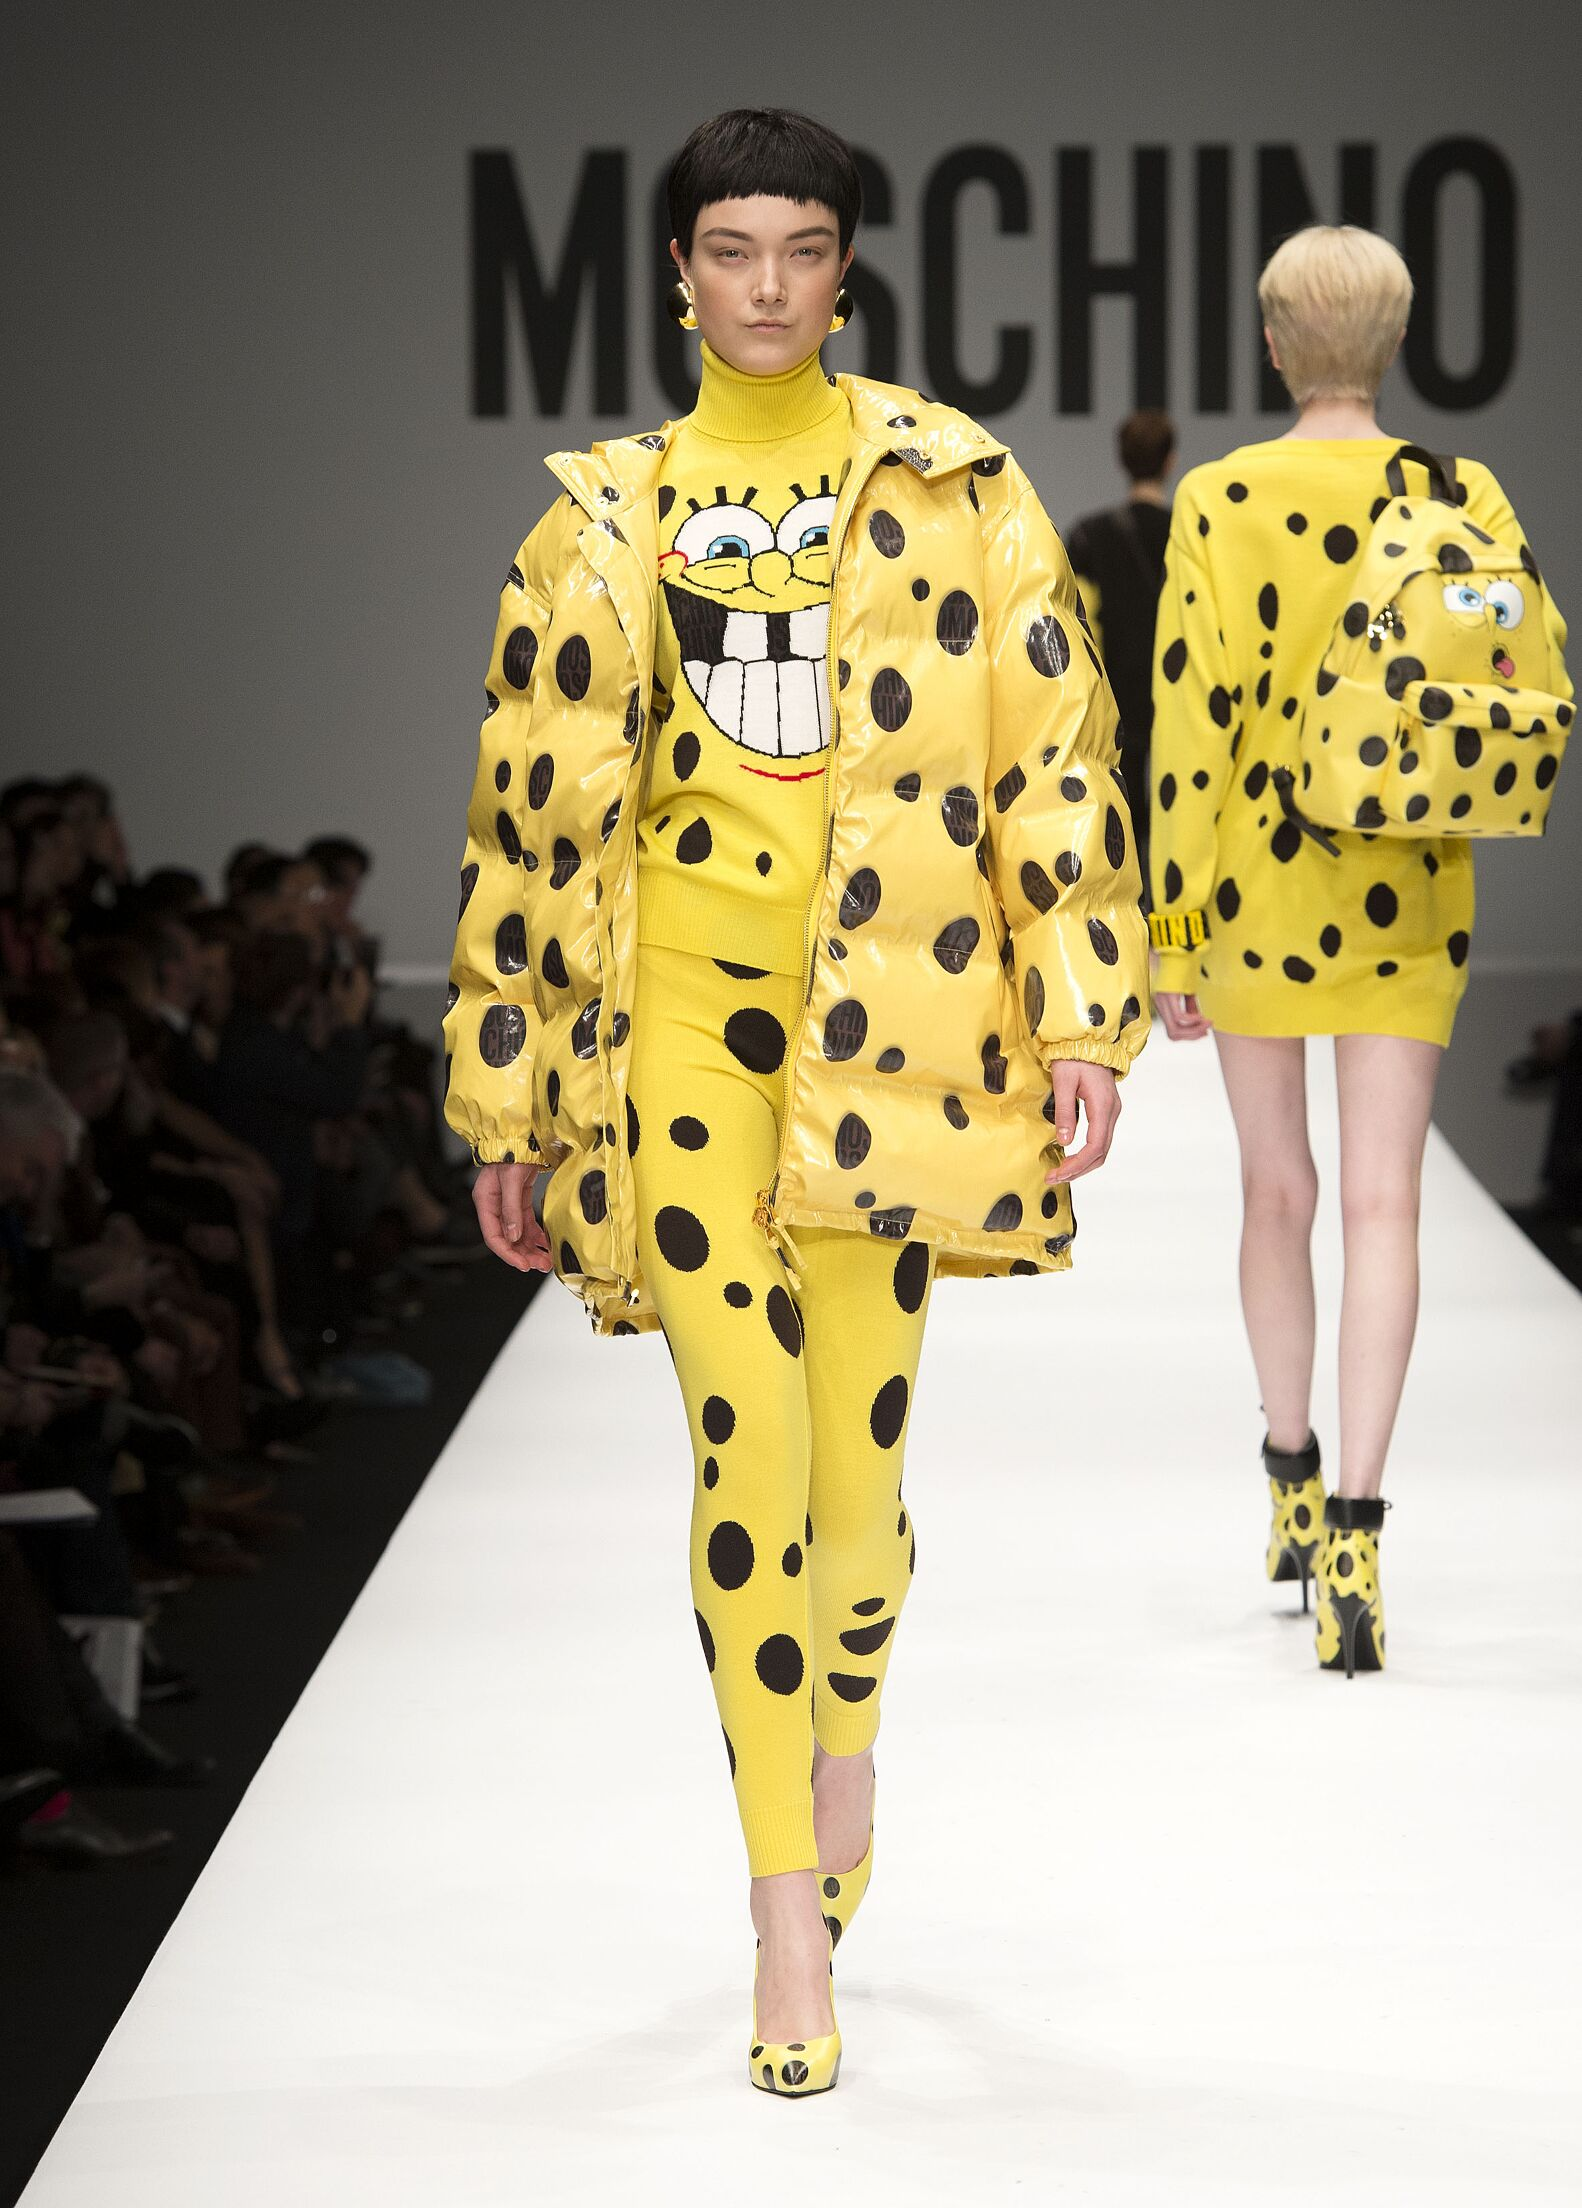 Moschino Fashion Show FW 2014 2015